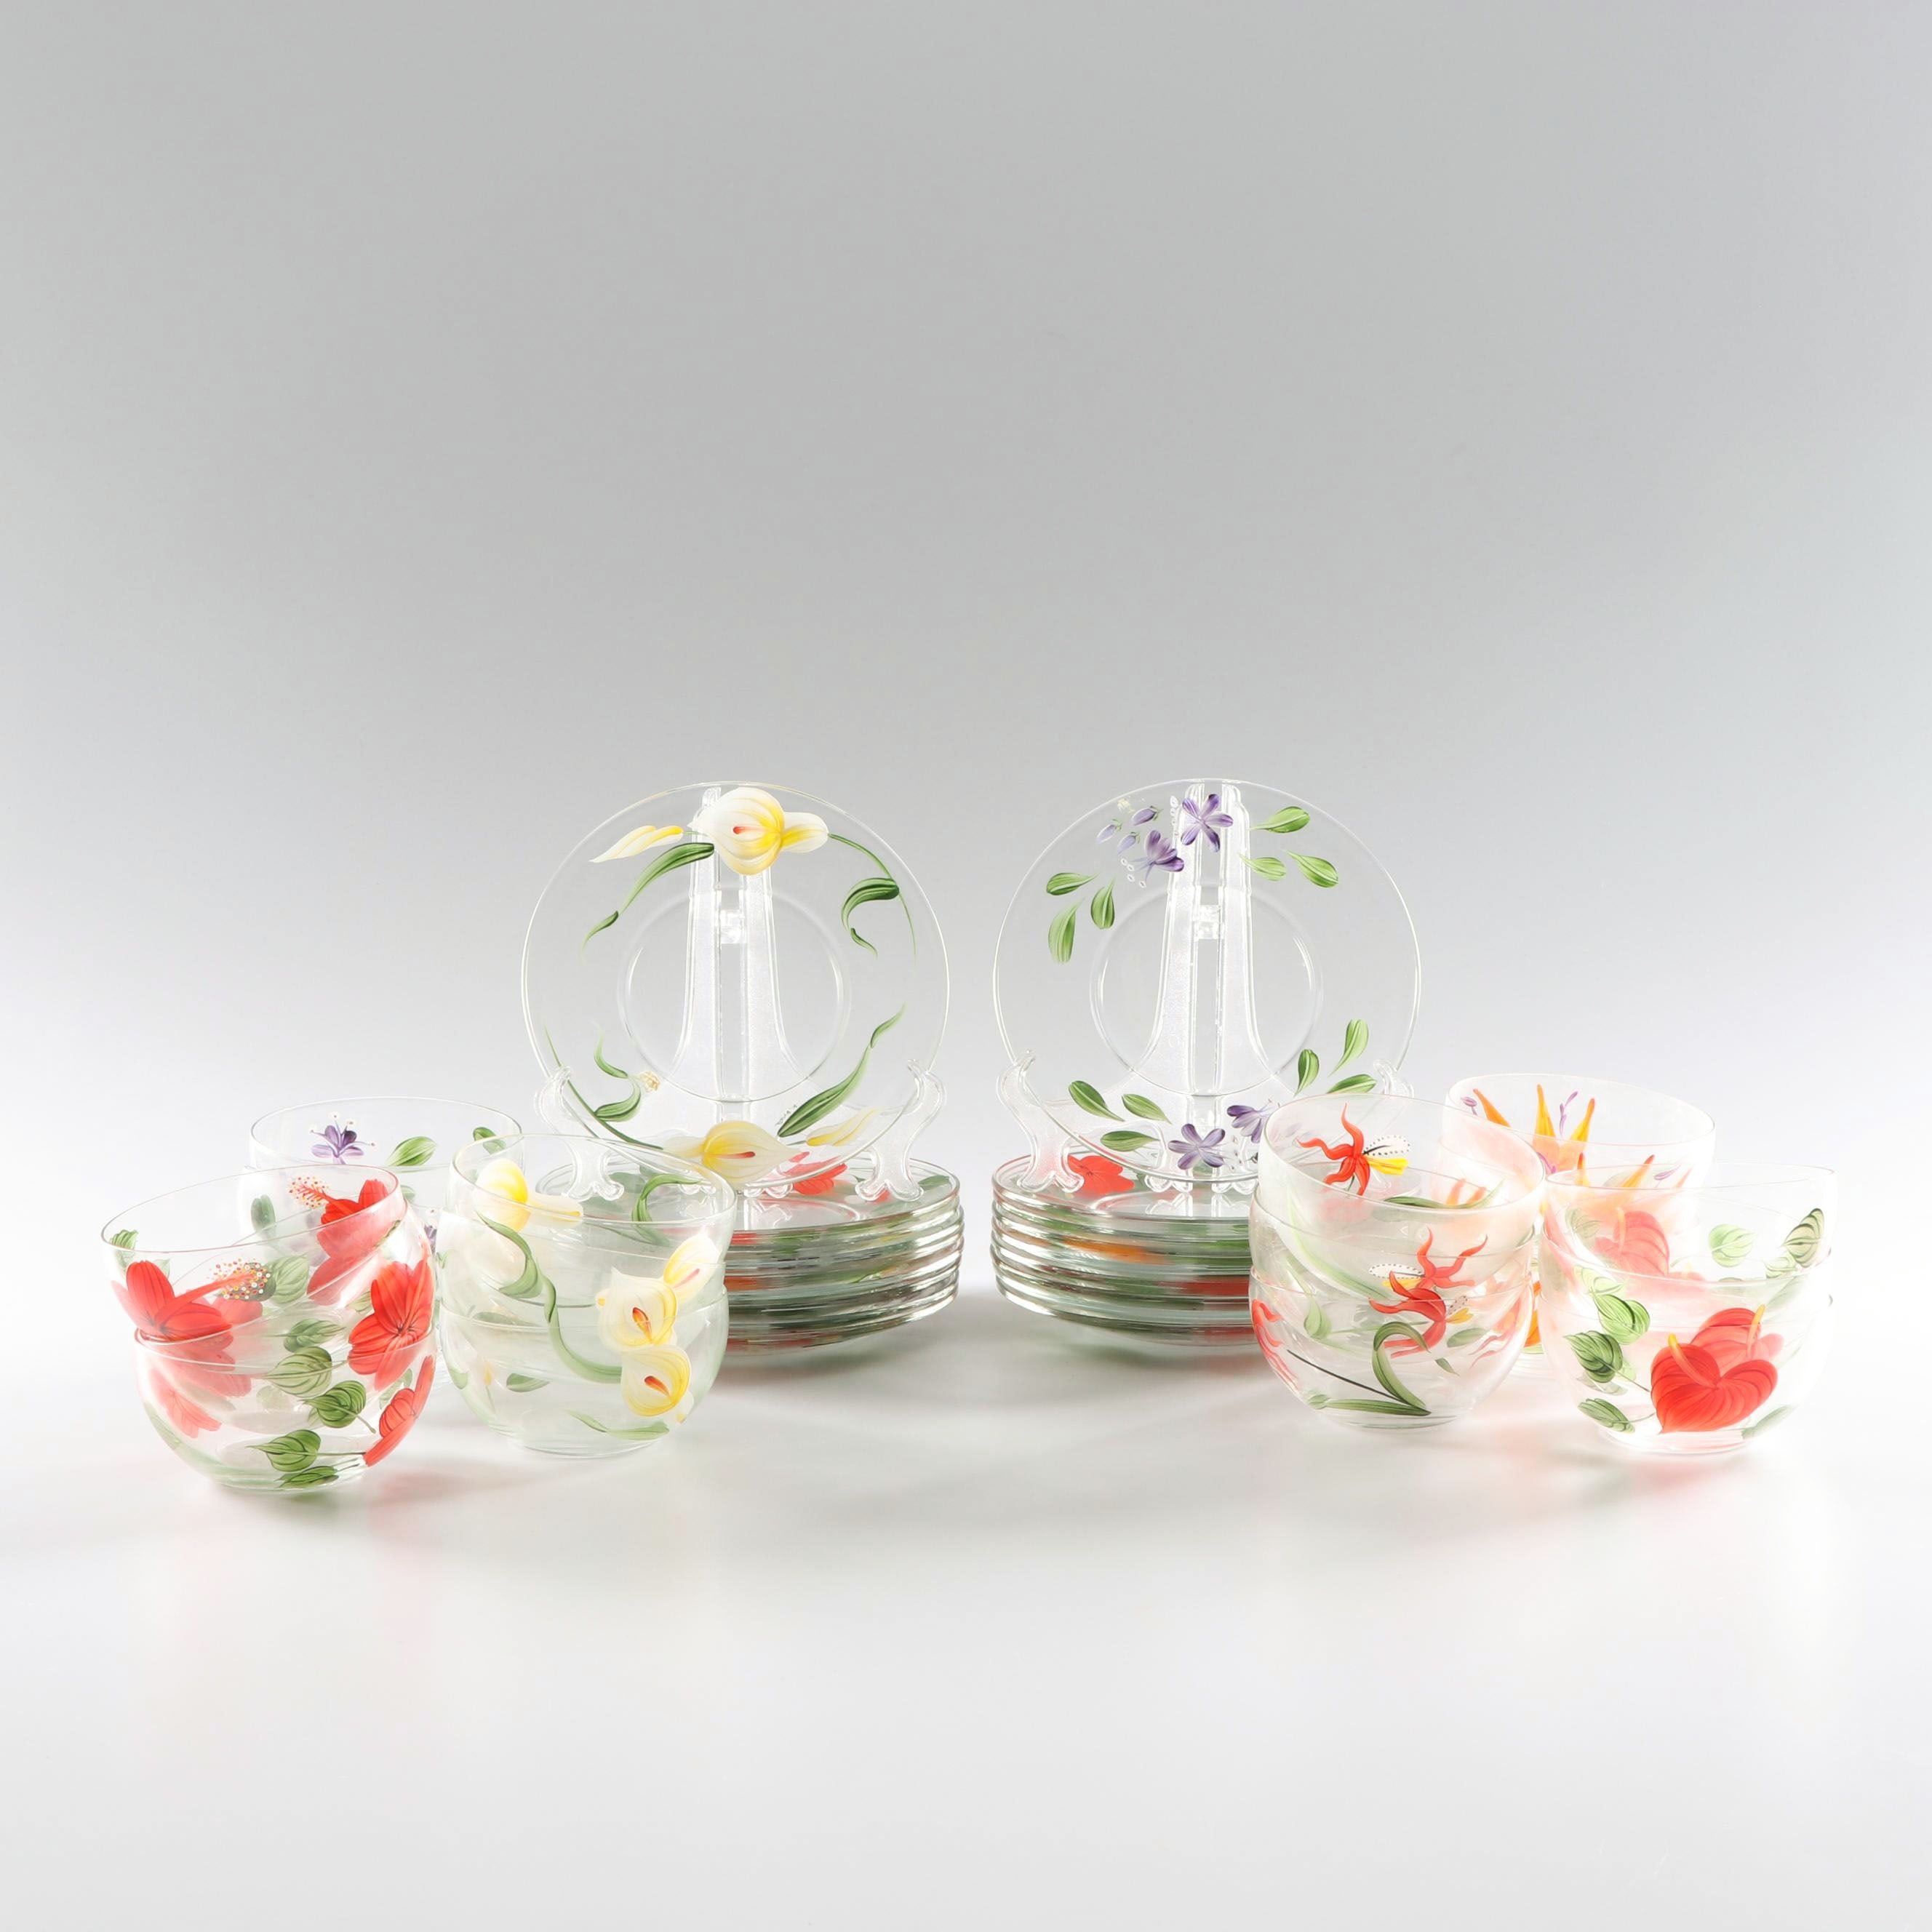 Hand-Painted Floral Glass Bowls and Plates featuring Luminarc